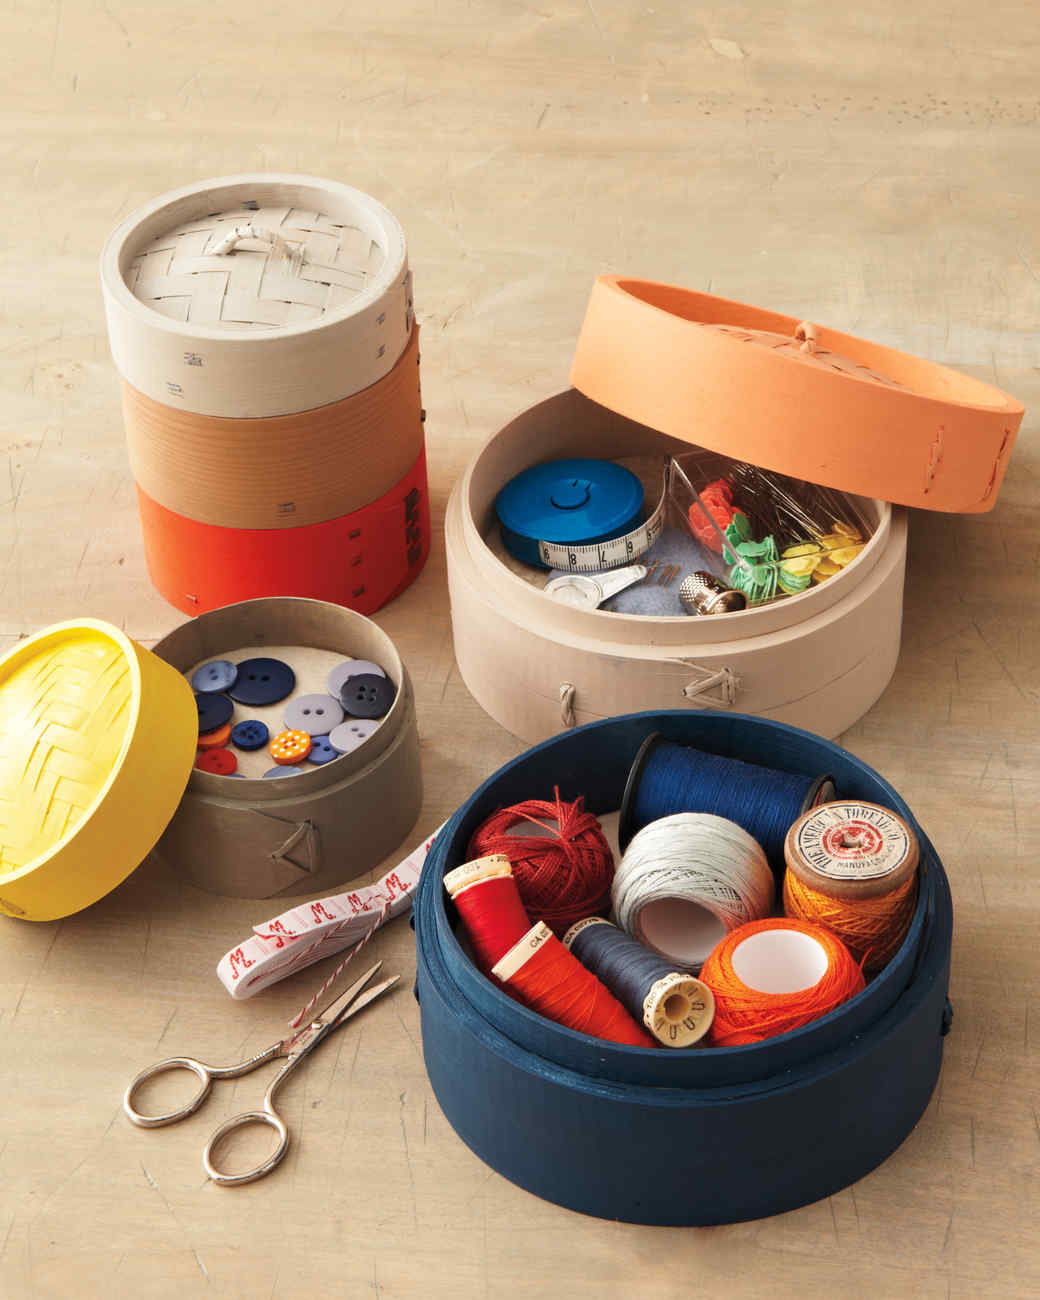 sewing-boxes-150-md109396.jpg